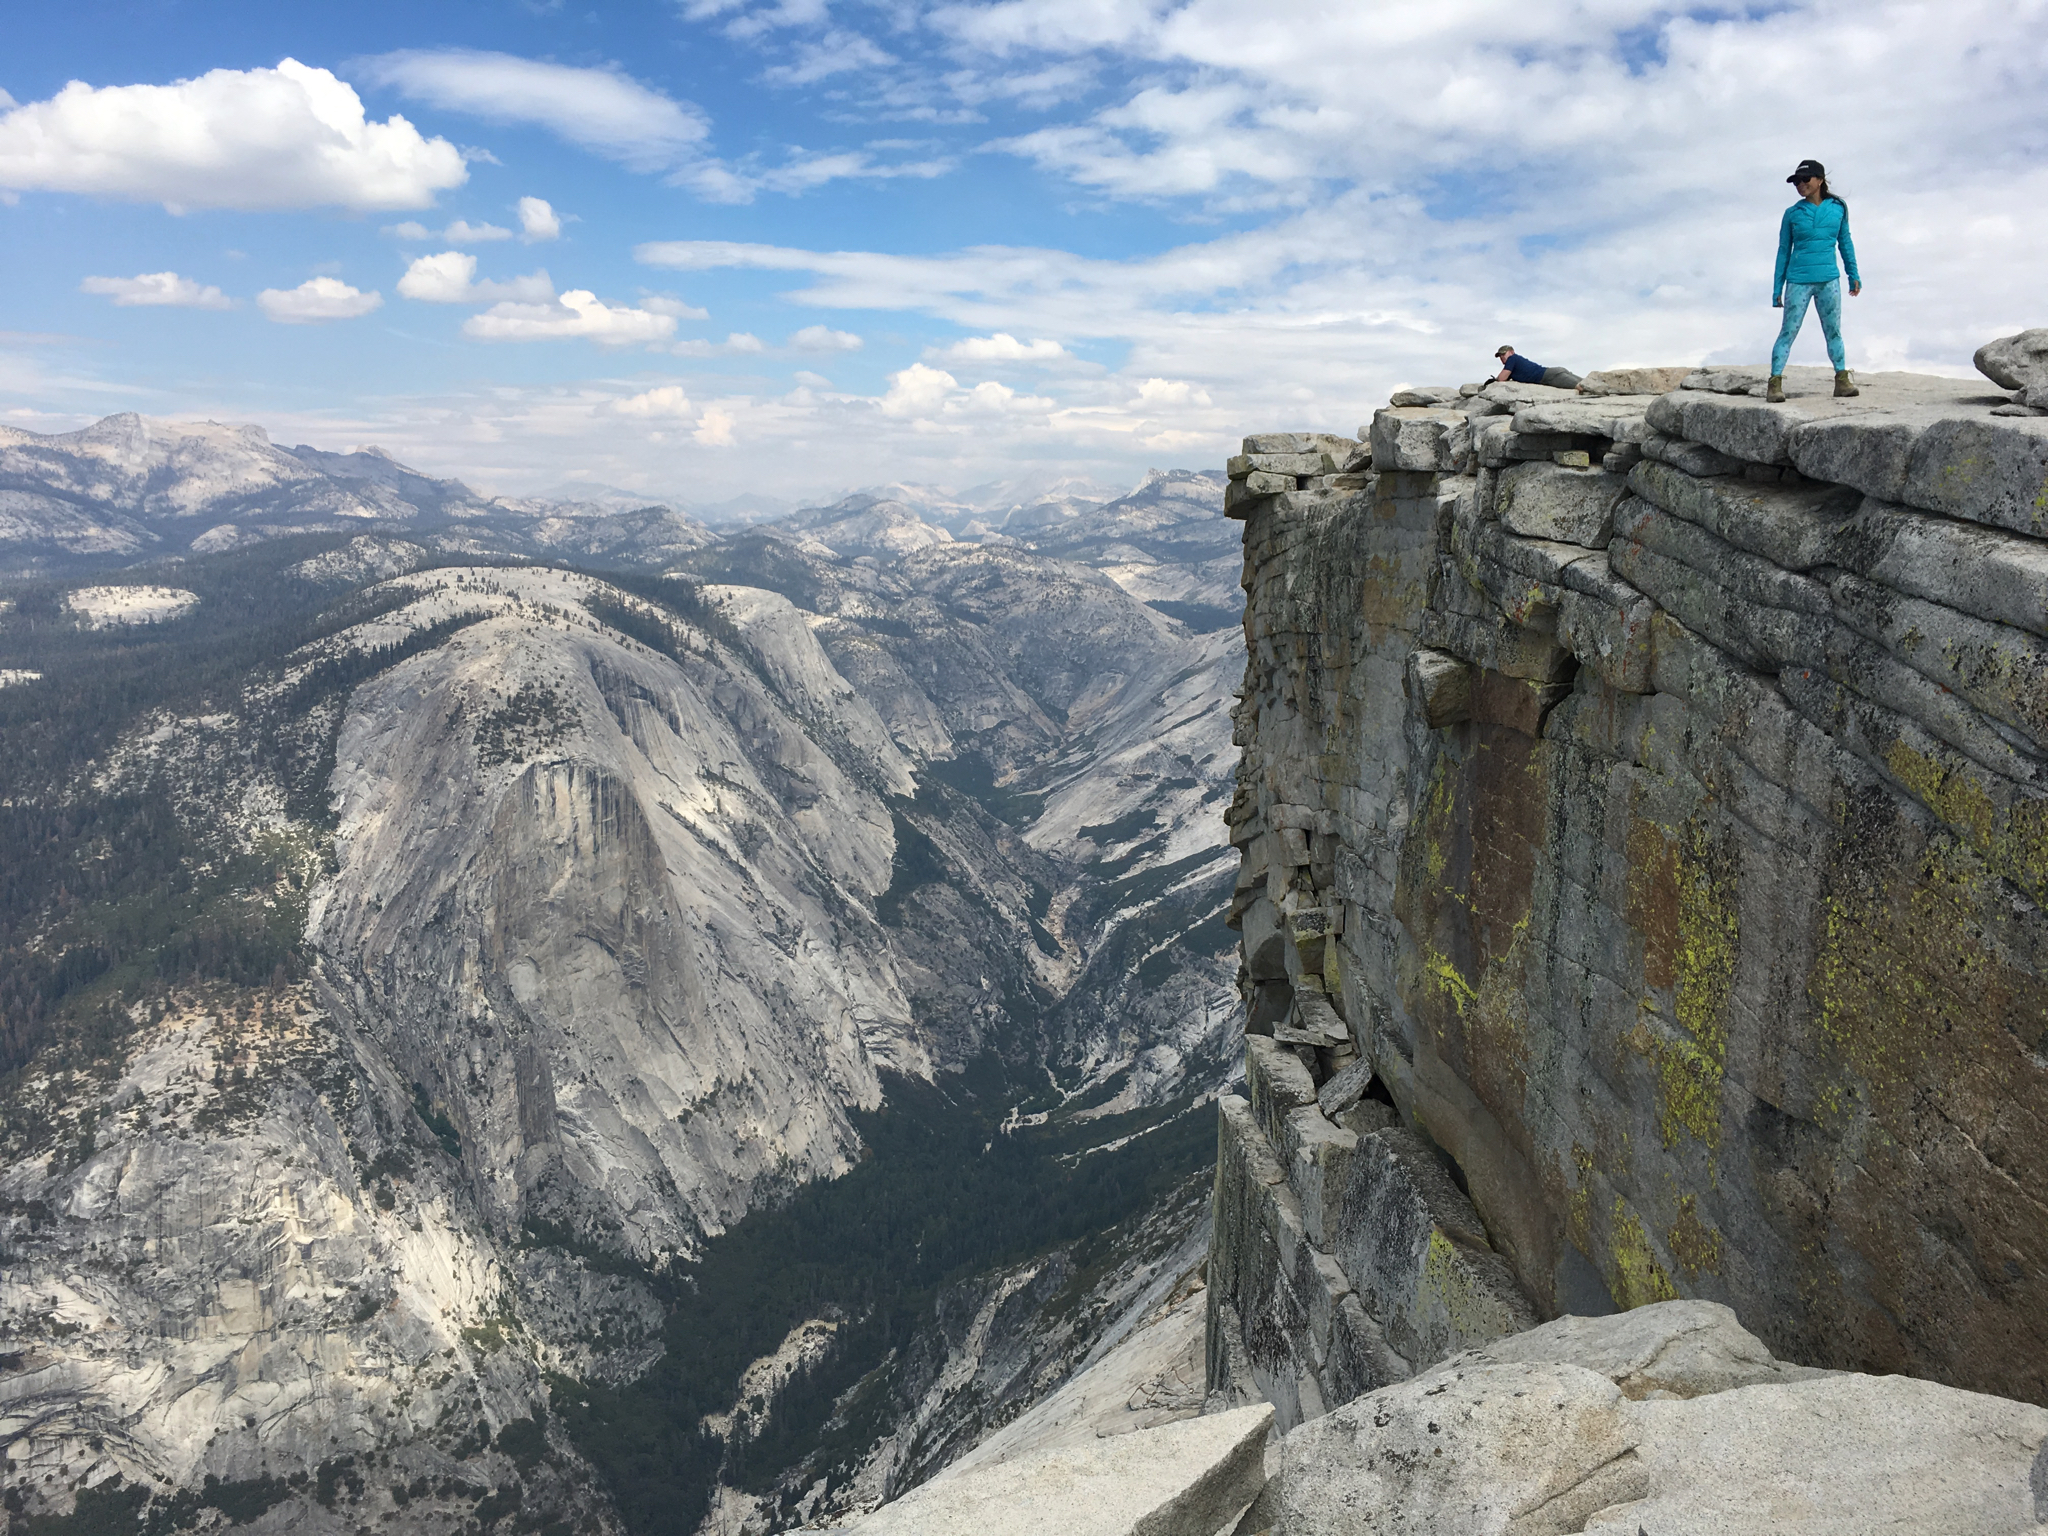 National-Parks-You-Must-See-Yosemite-National-Park-1.JPG